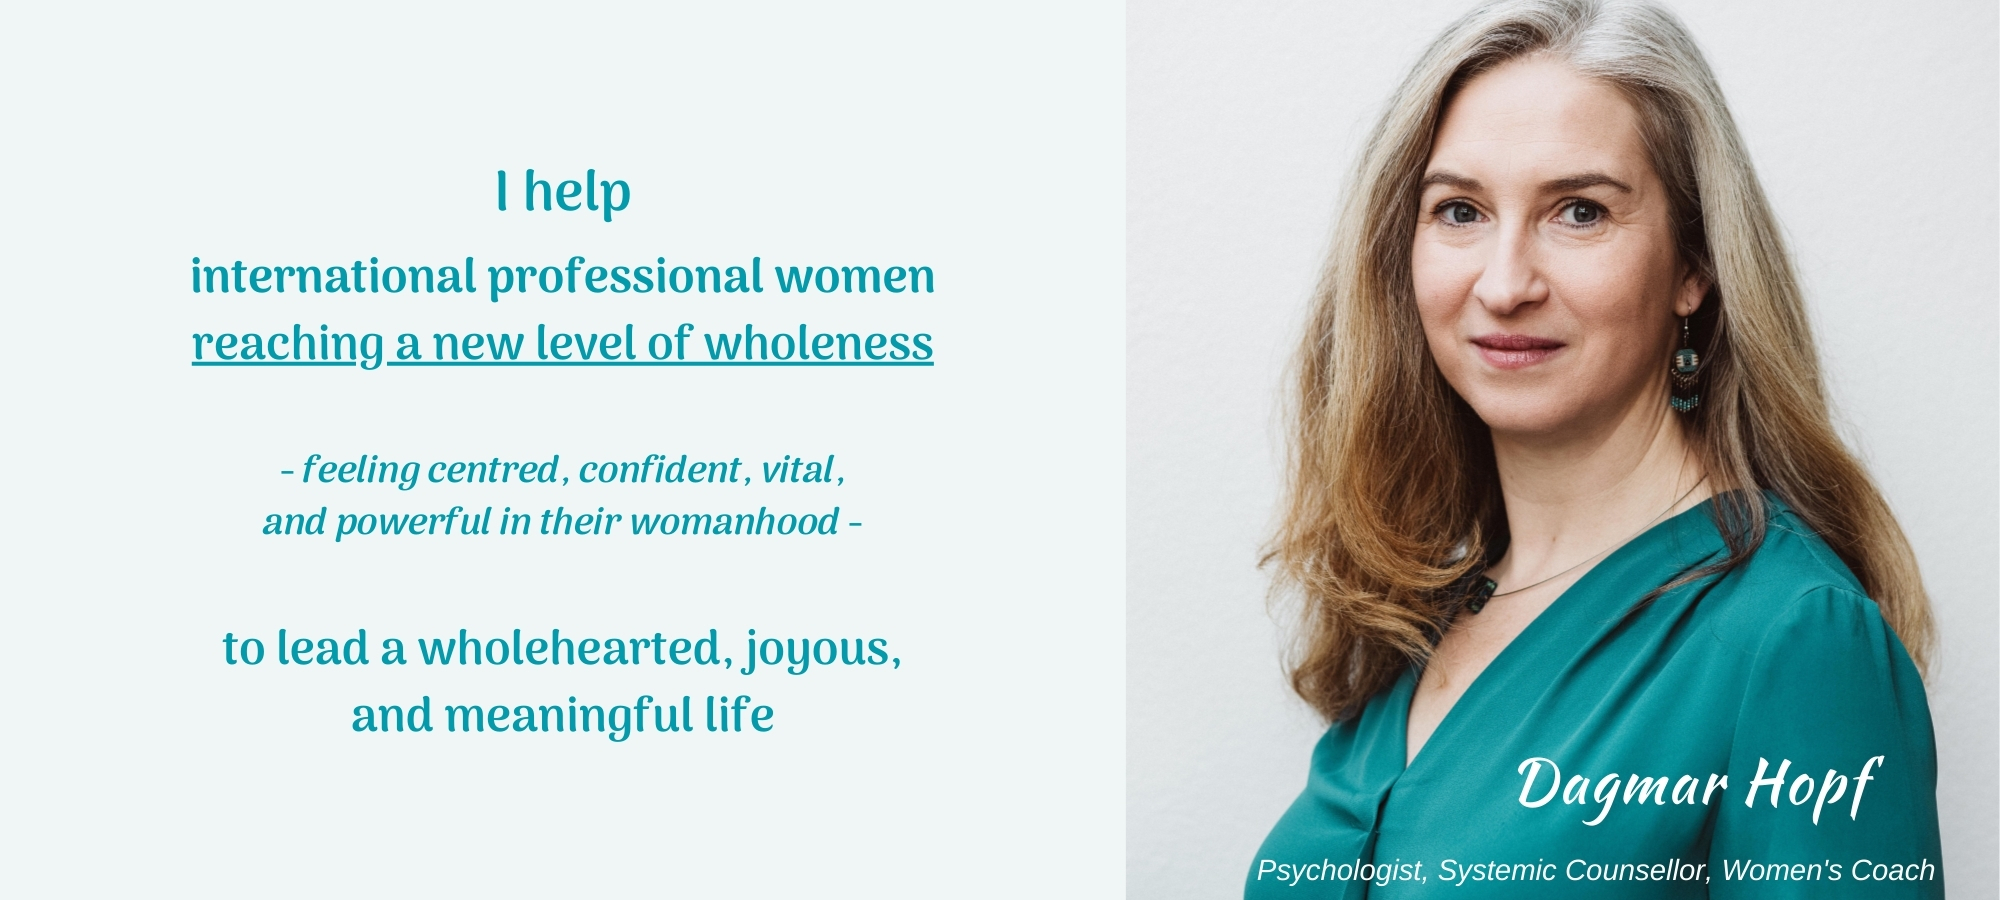 I help international professional women reaching a new level of wholeness